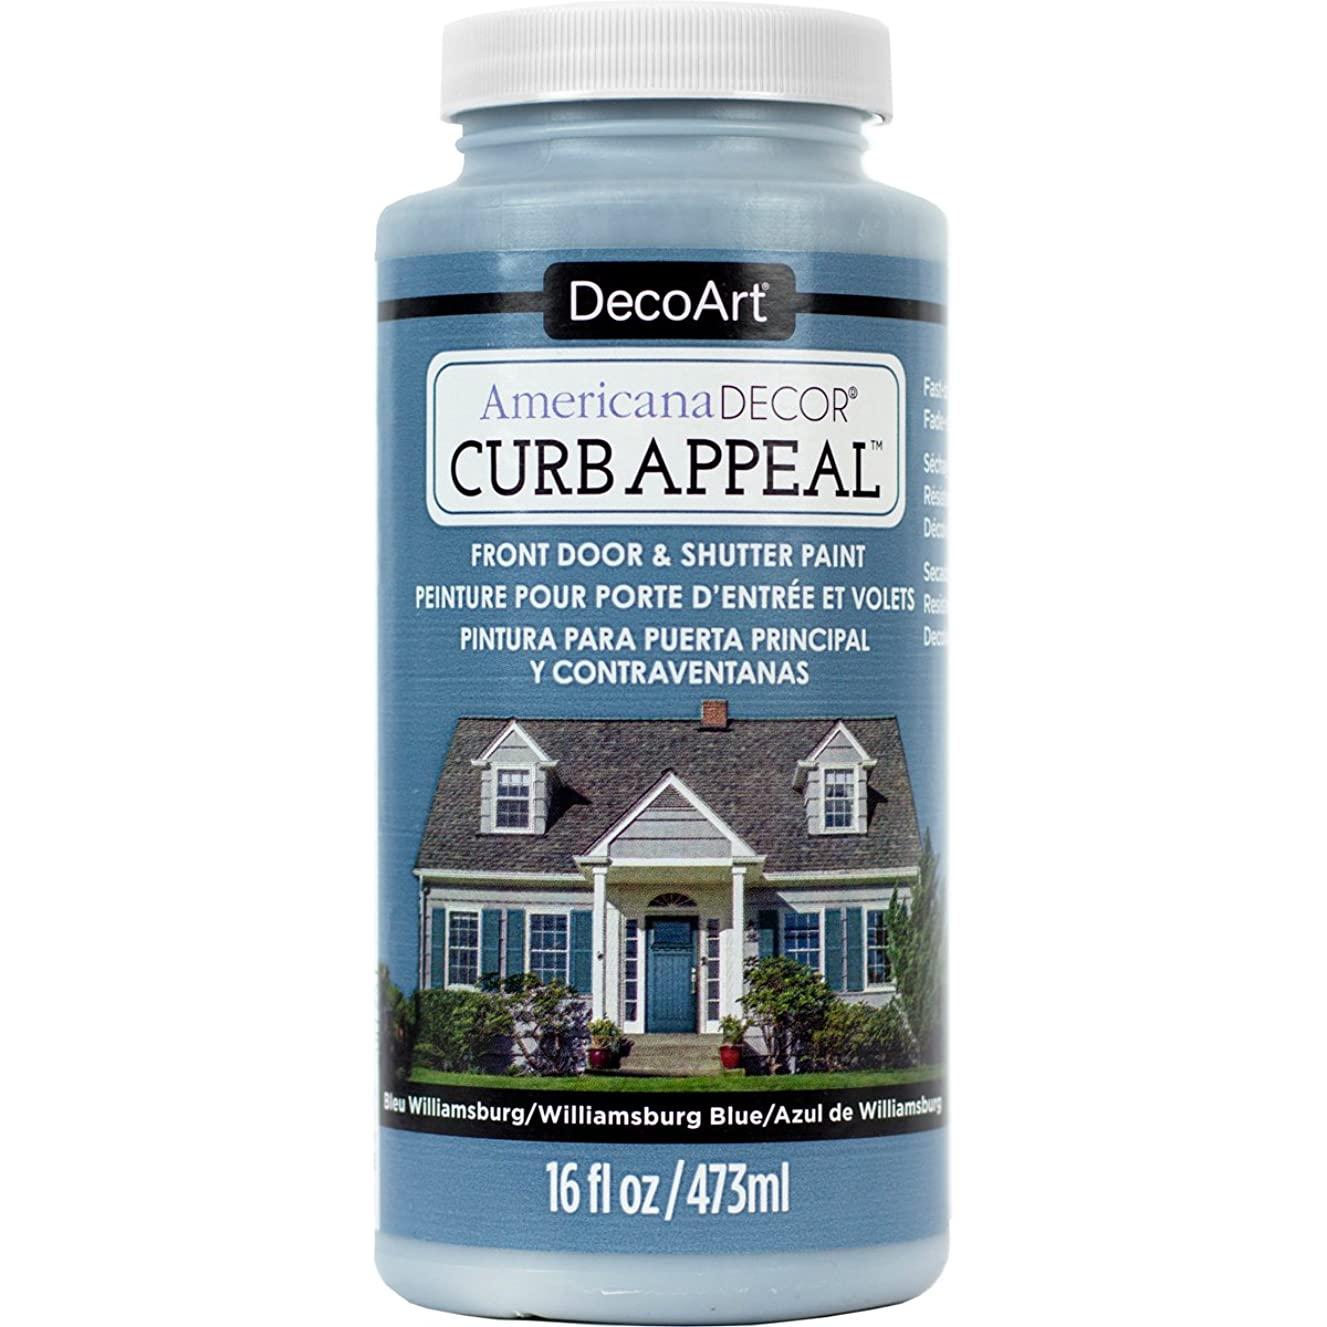 DecoArt Americana Decor Curb Appeal 16oz Willblue CurbAppeal16oz